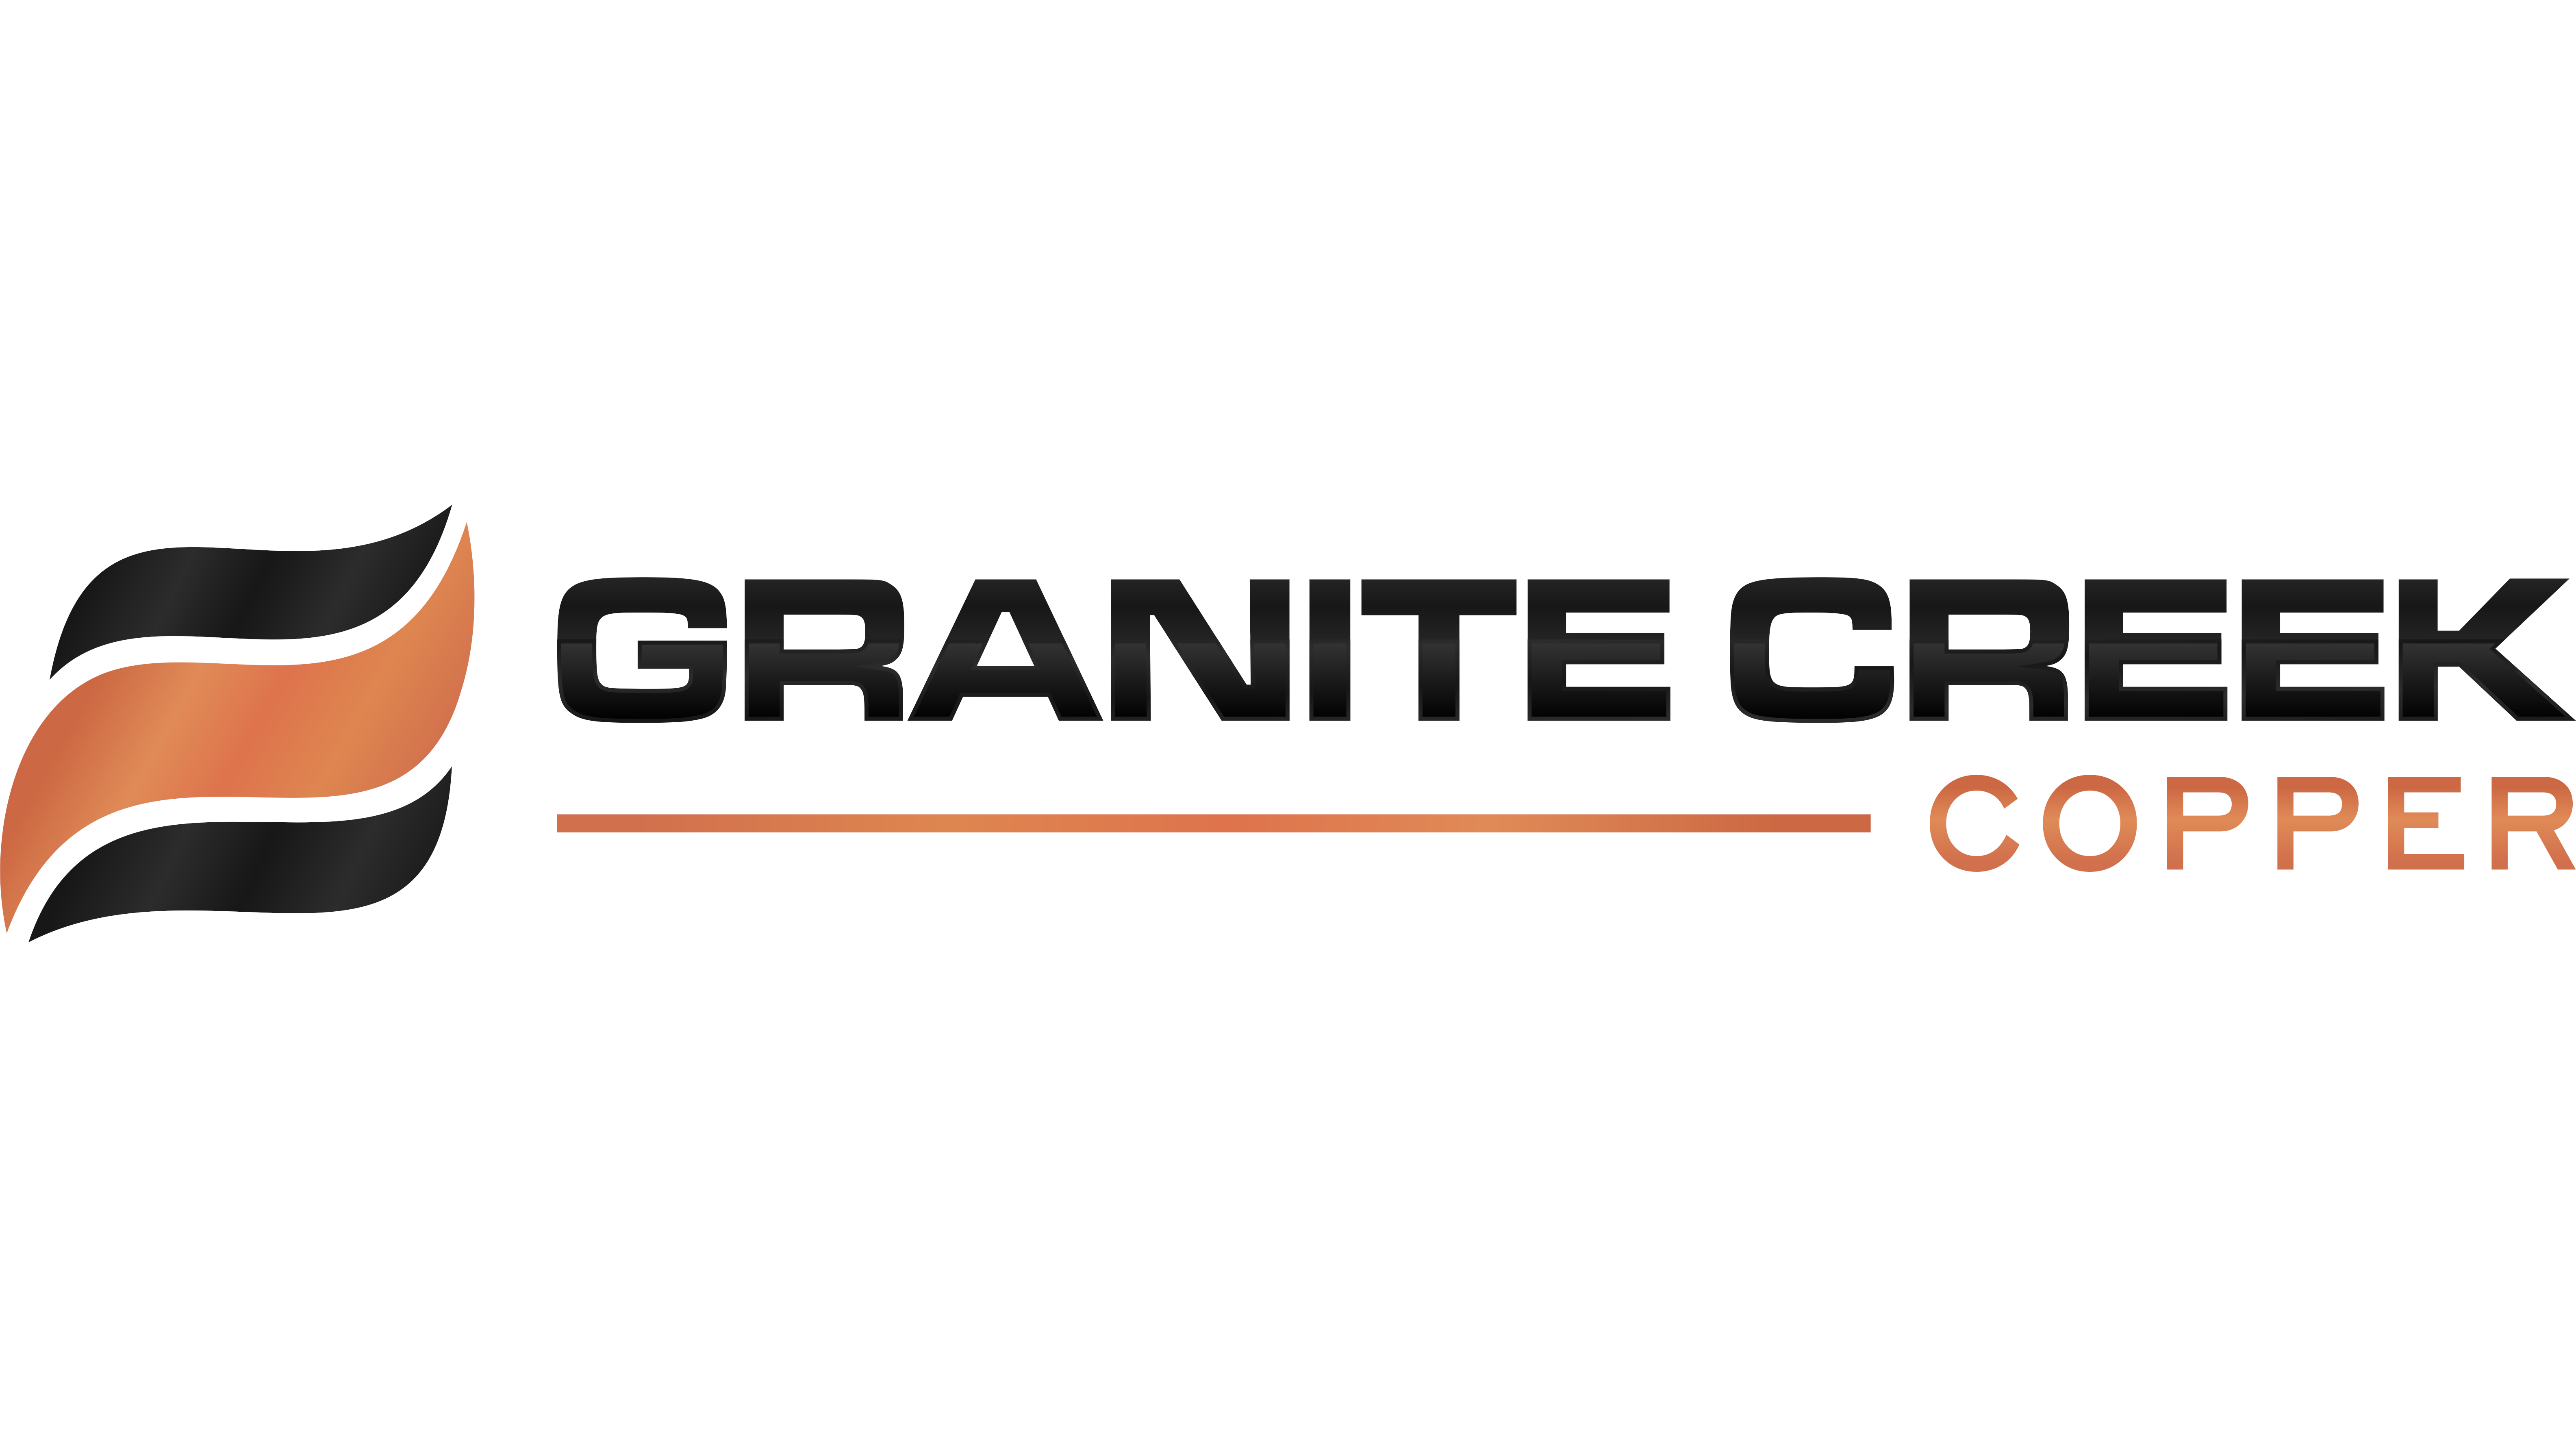 Granite Creek Copper Announces C$4.3 million Private Placement Financing with Canaccord Genuity as Advisor